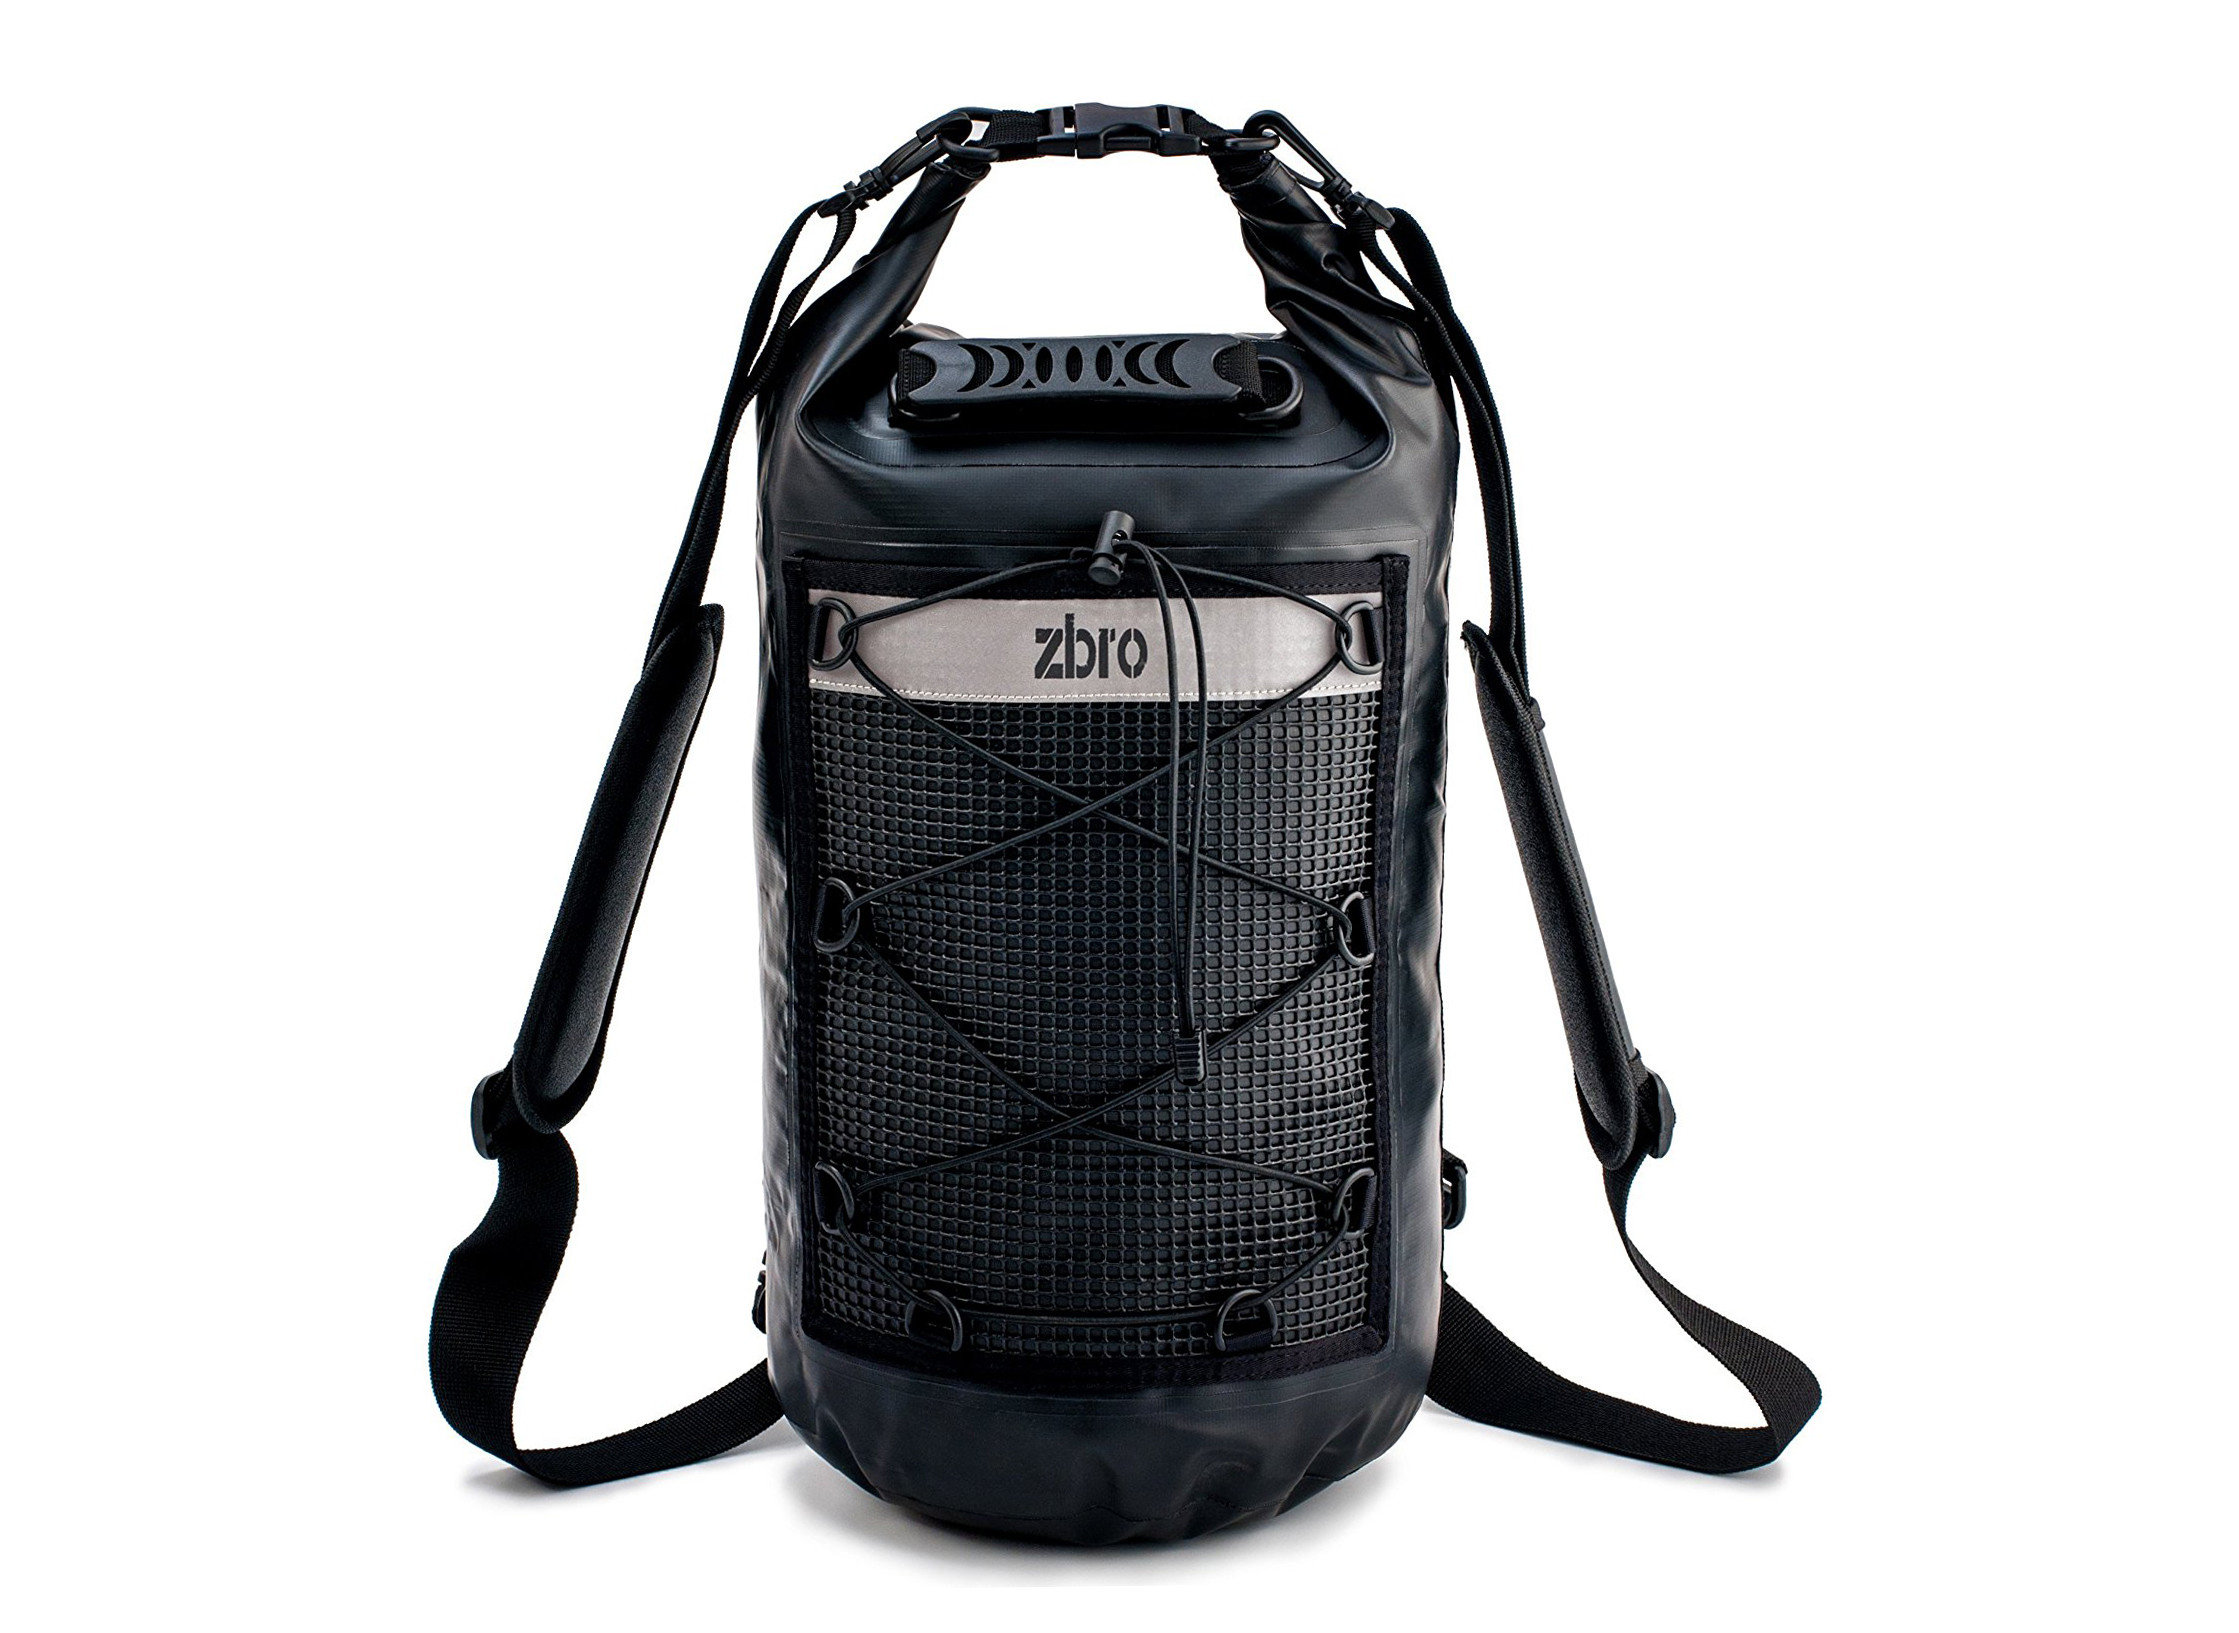 Jetsetter Guides Packing Tips Travel Tips Trip Ideas bag product backpack pattern Design product design hand luggage handbag luggage & bags